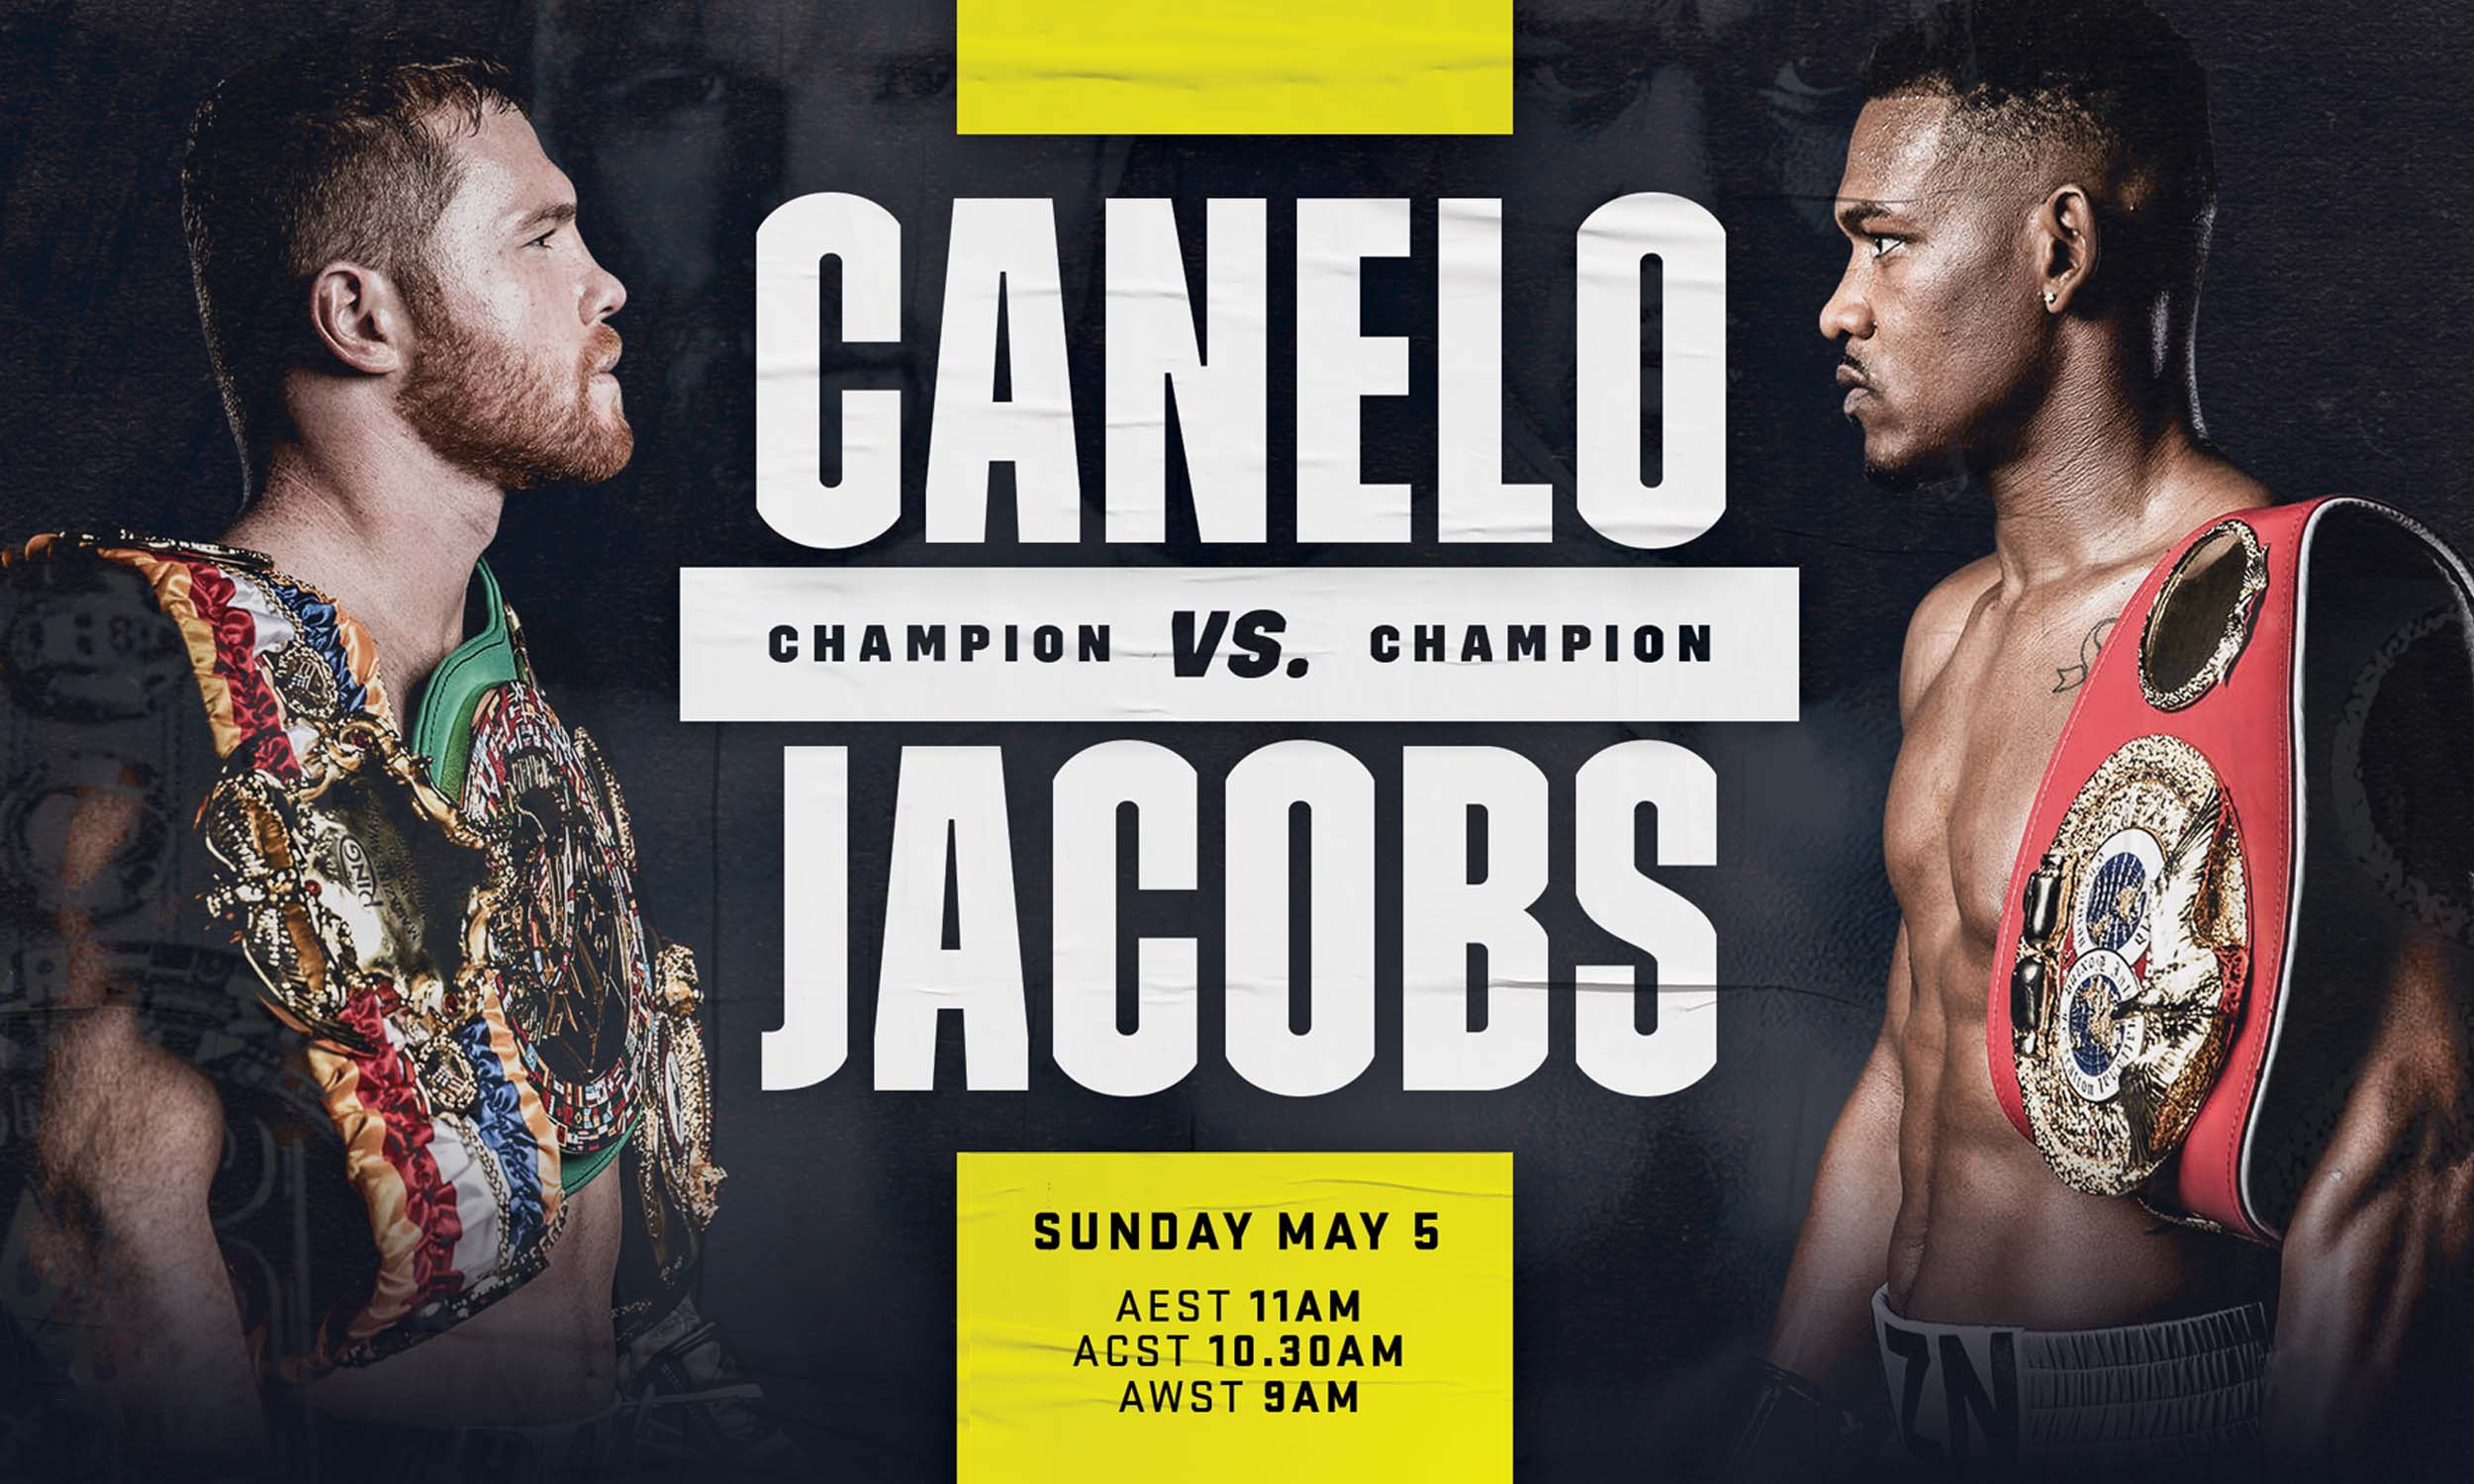 Canelo vs Jacobs_5 May_BATP_1.jpg